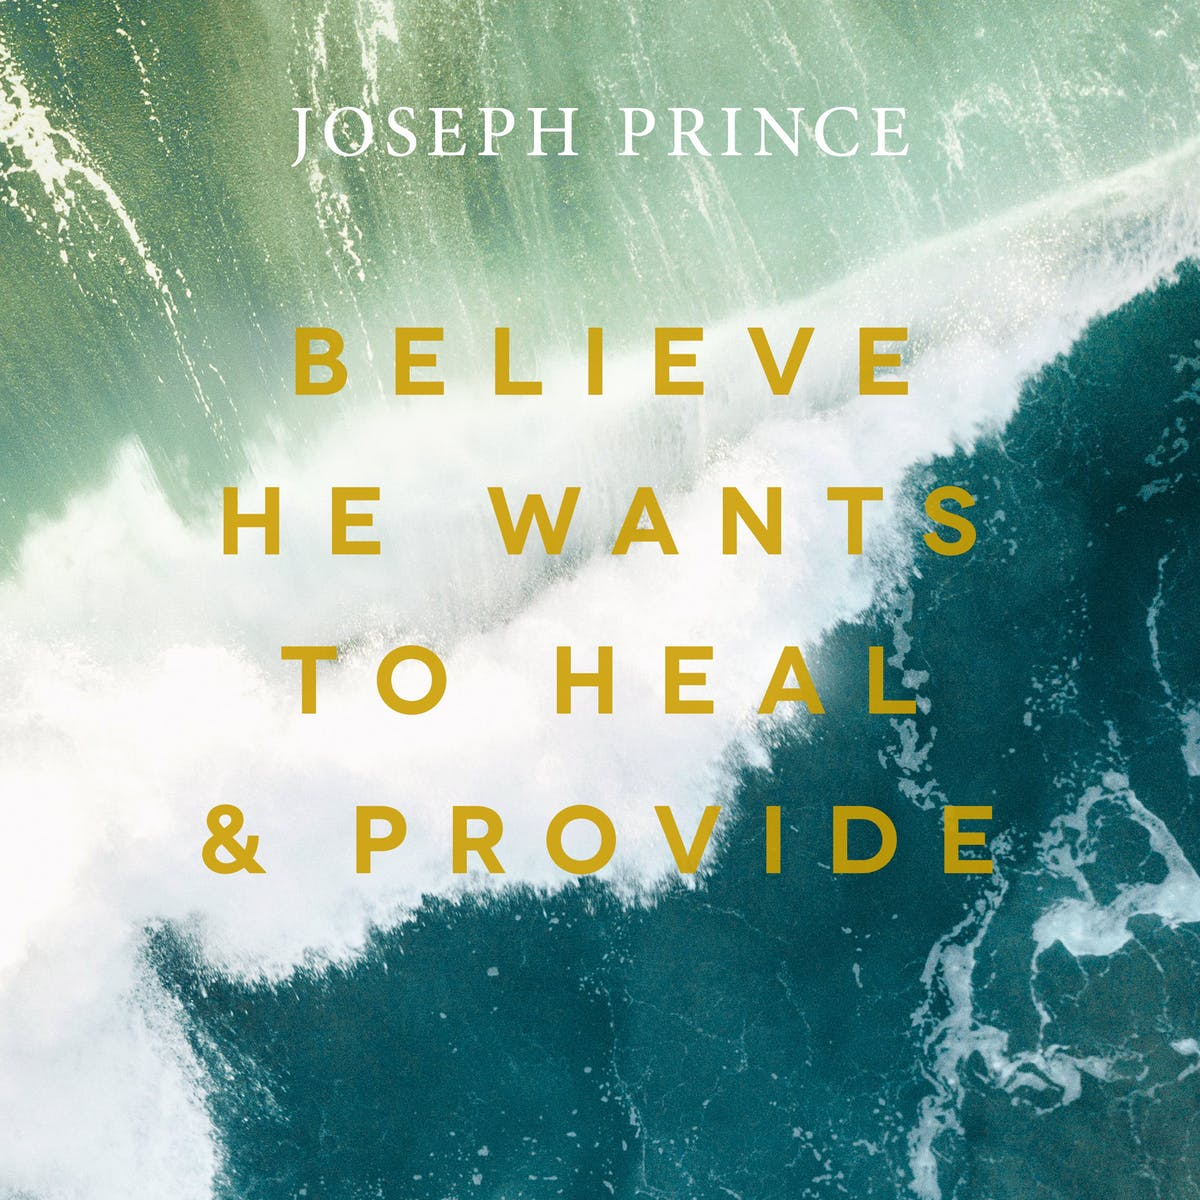 Believe He Wants To Heal And Provide | Official Joseph Prince Sermon